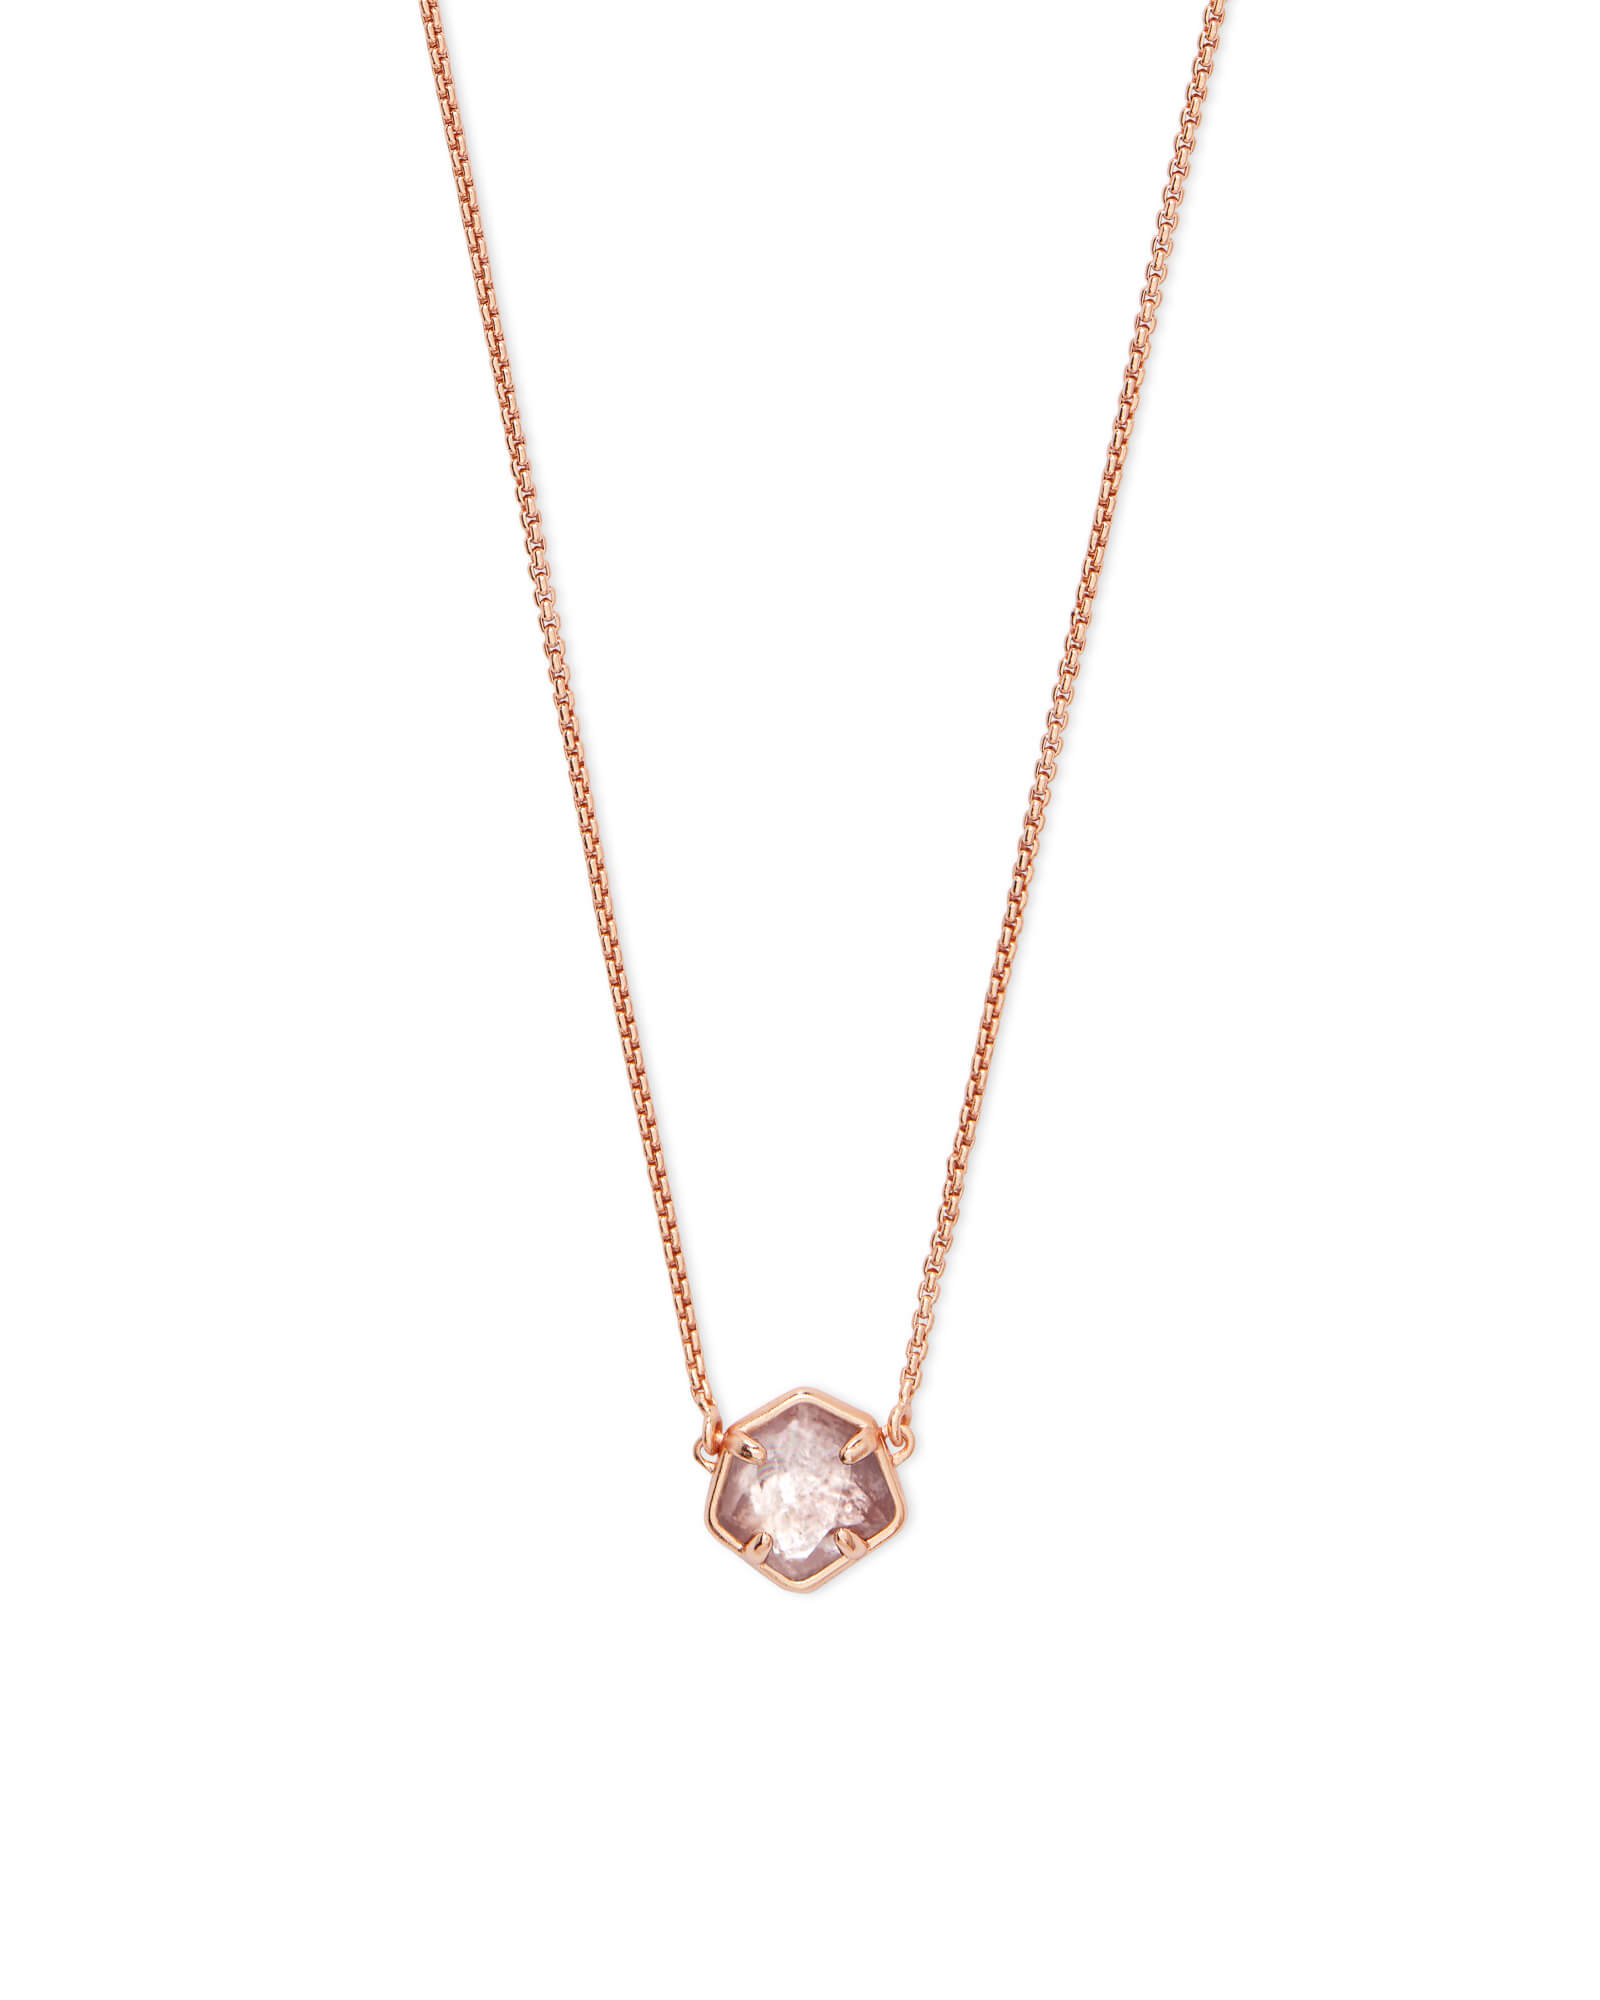 Jaxon Rose Gold Pendant Necklace in Sable Mica